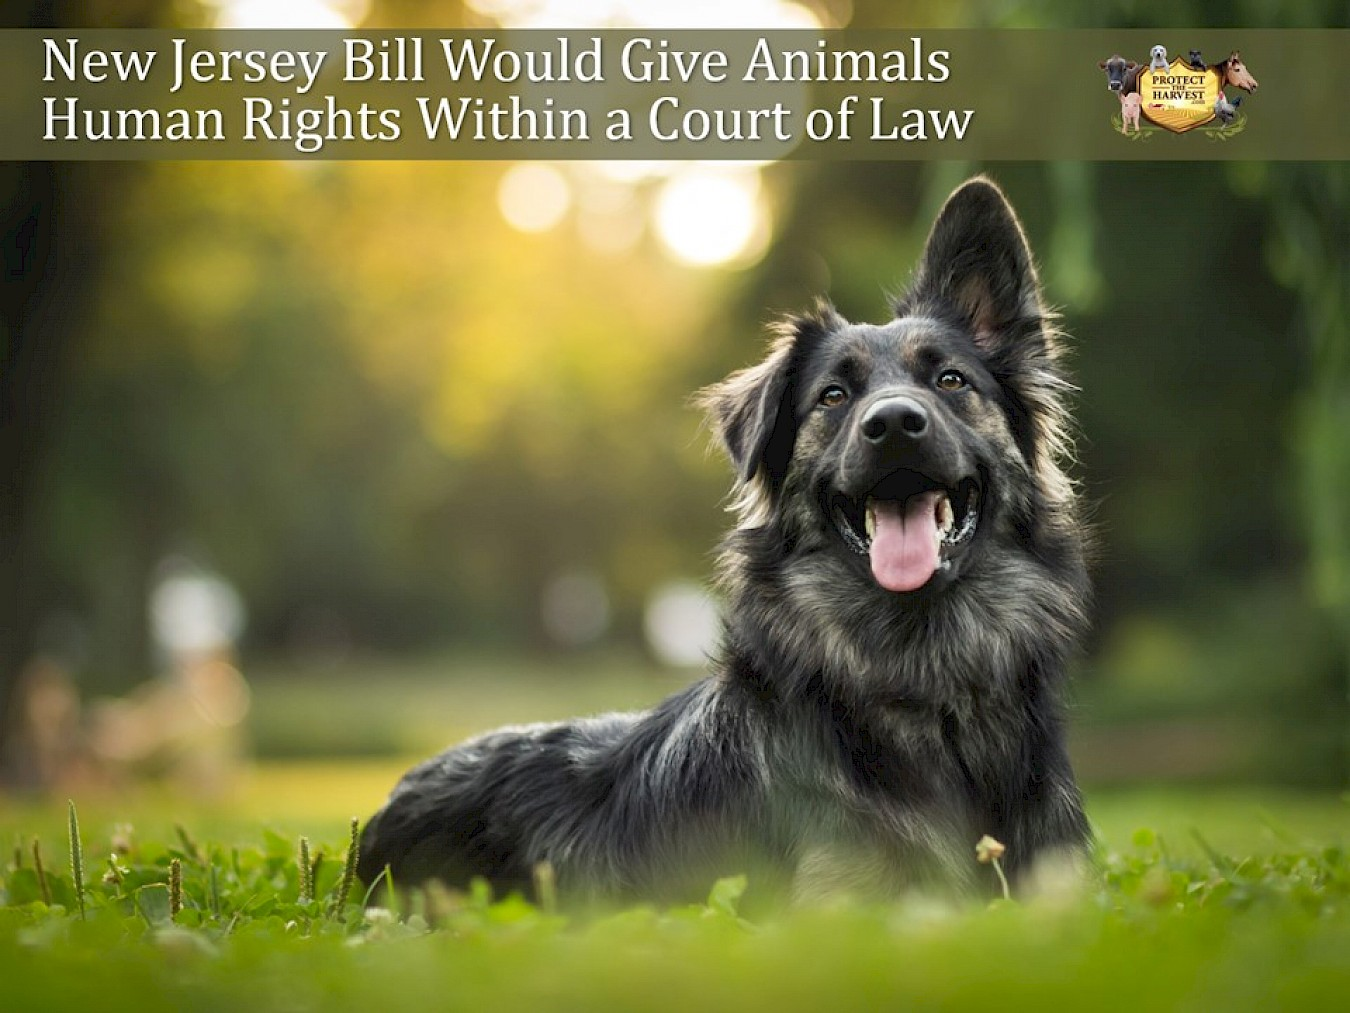 New Jersey Bill Would Give Animals Human Rights Within a Court of Law